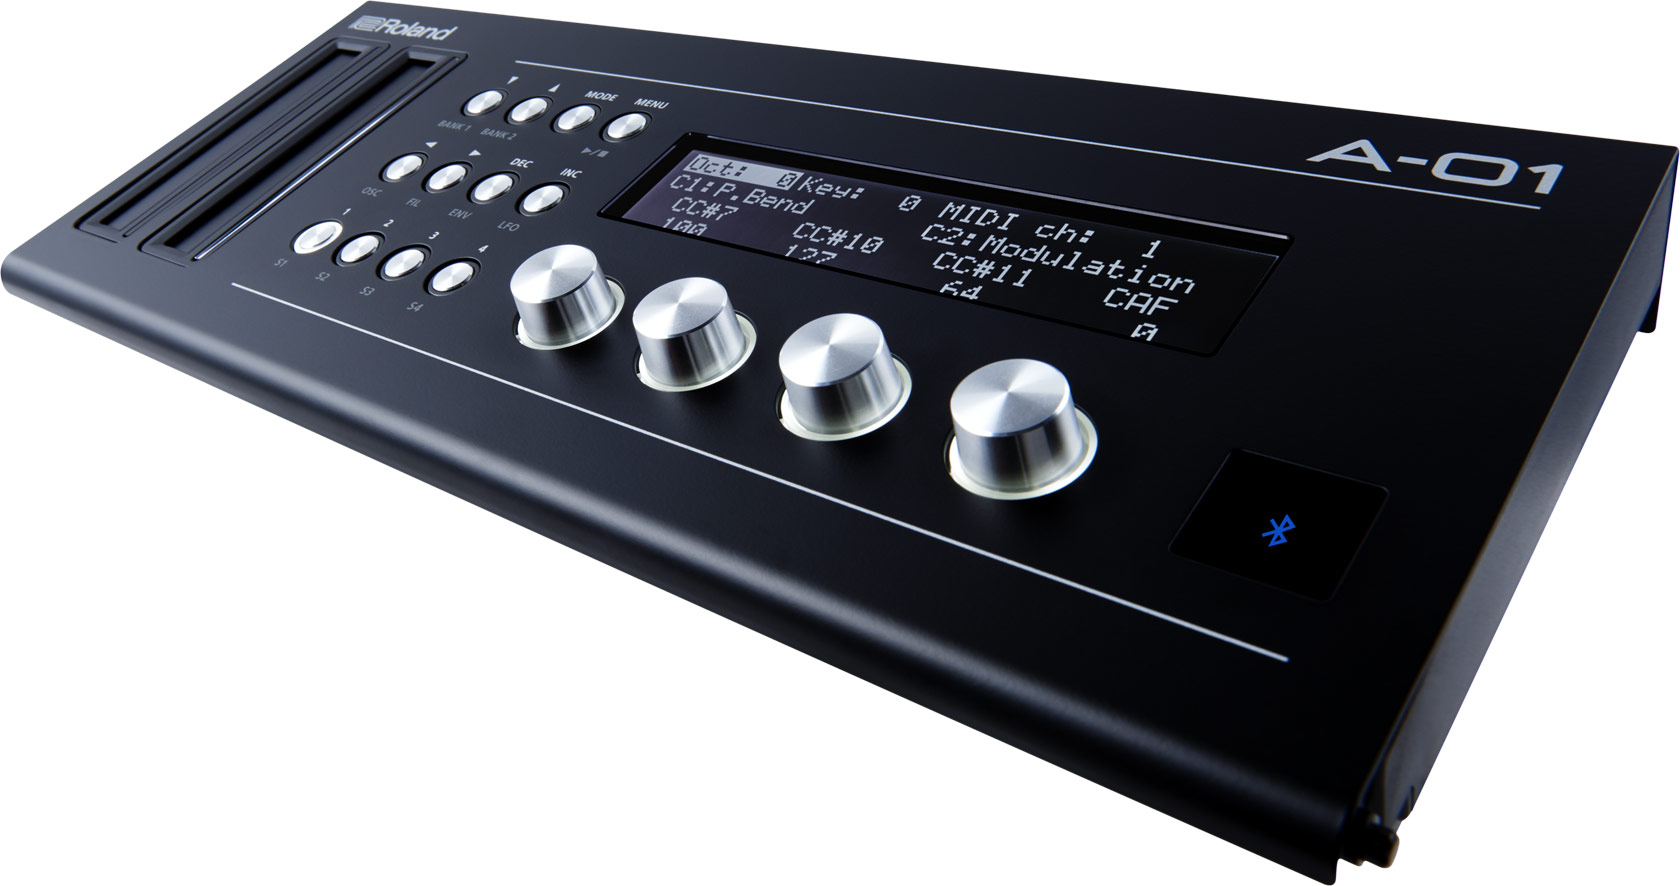 ROLAND A-01 CONTROLLER WINDOWS 7 64 DRIVER